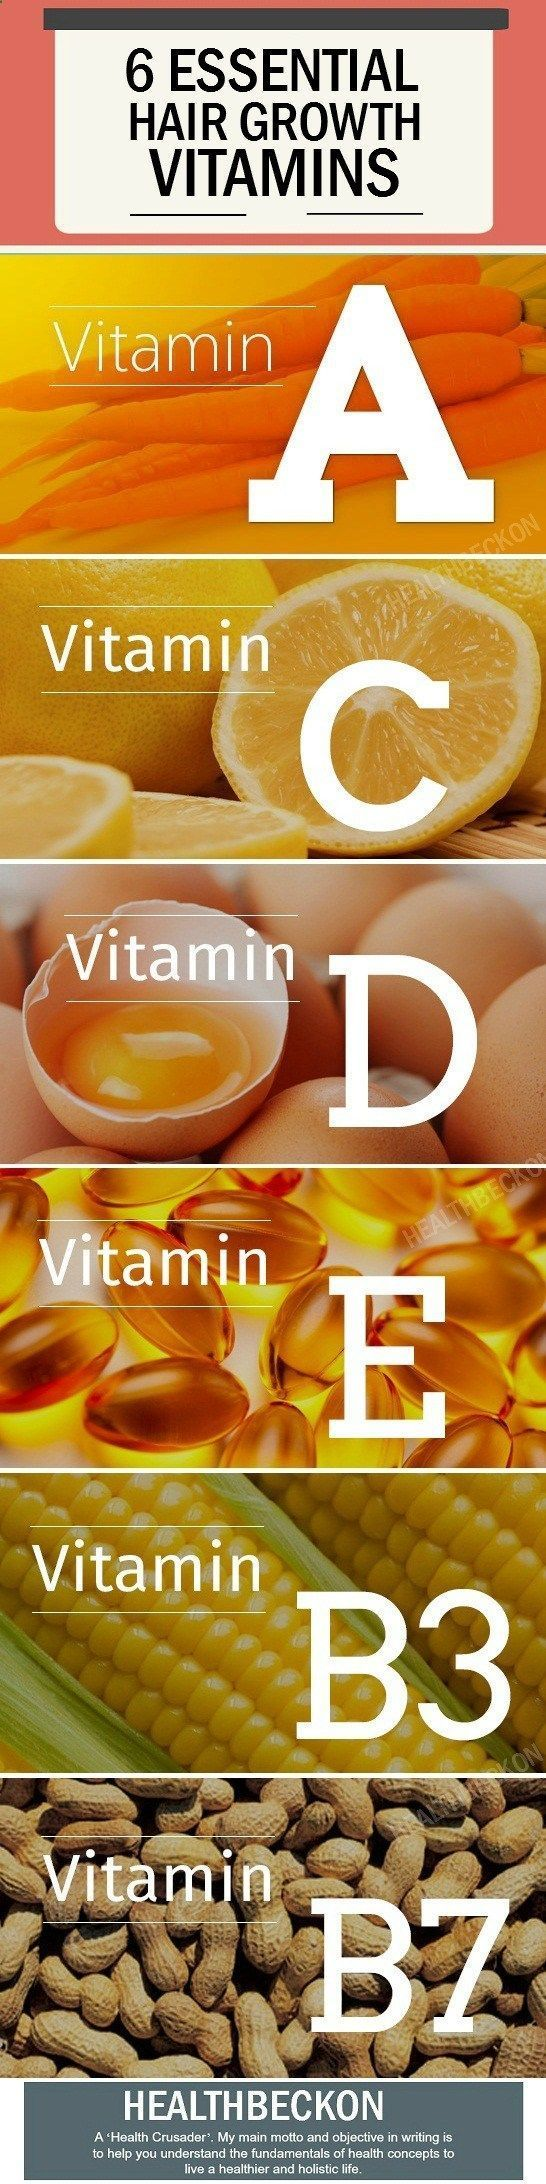 Hair Vitamins - Given below is the list of vitamins that can work wonders in spurring hair growth.